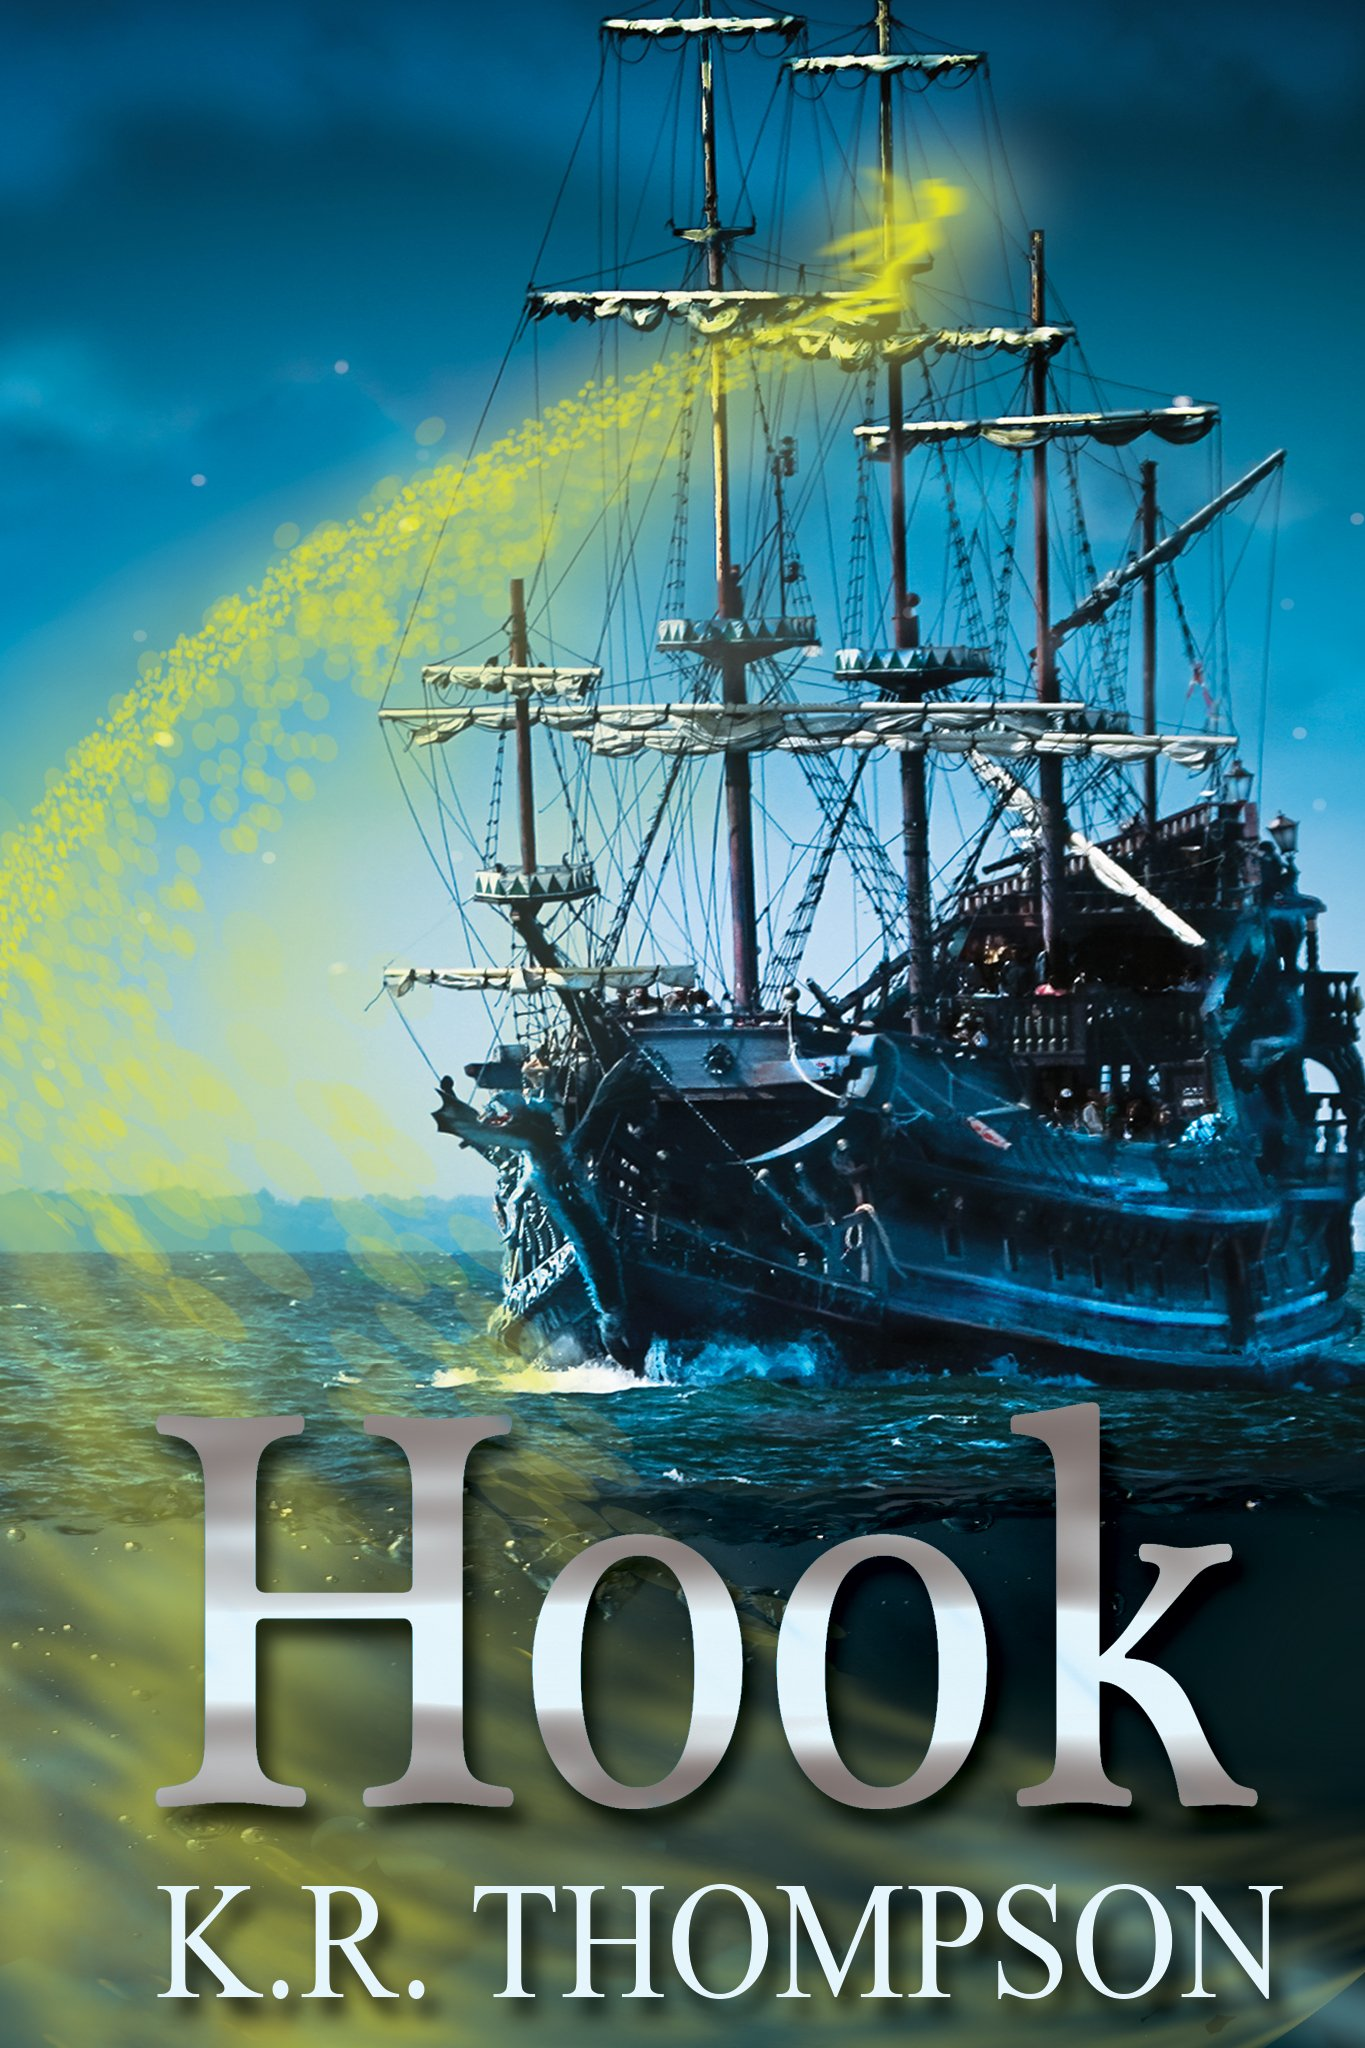 Hook (The Untold Stories of Neverland Book 1) by K. R. Thompson